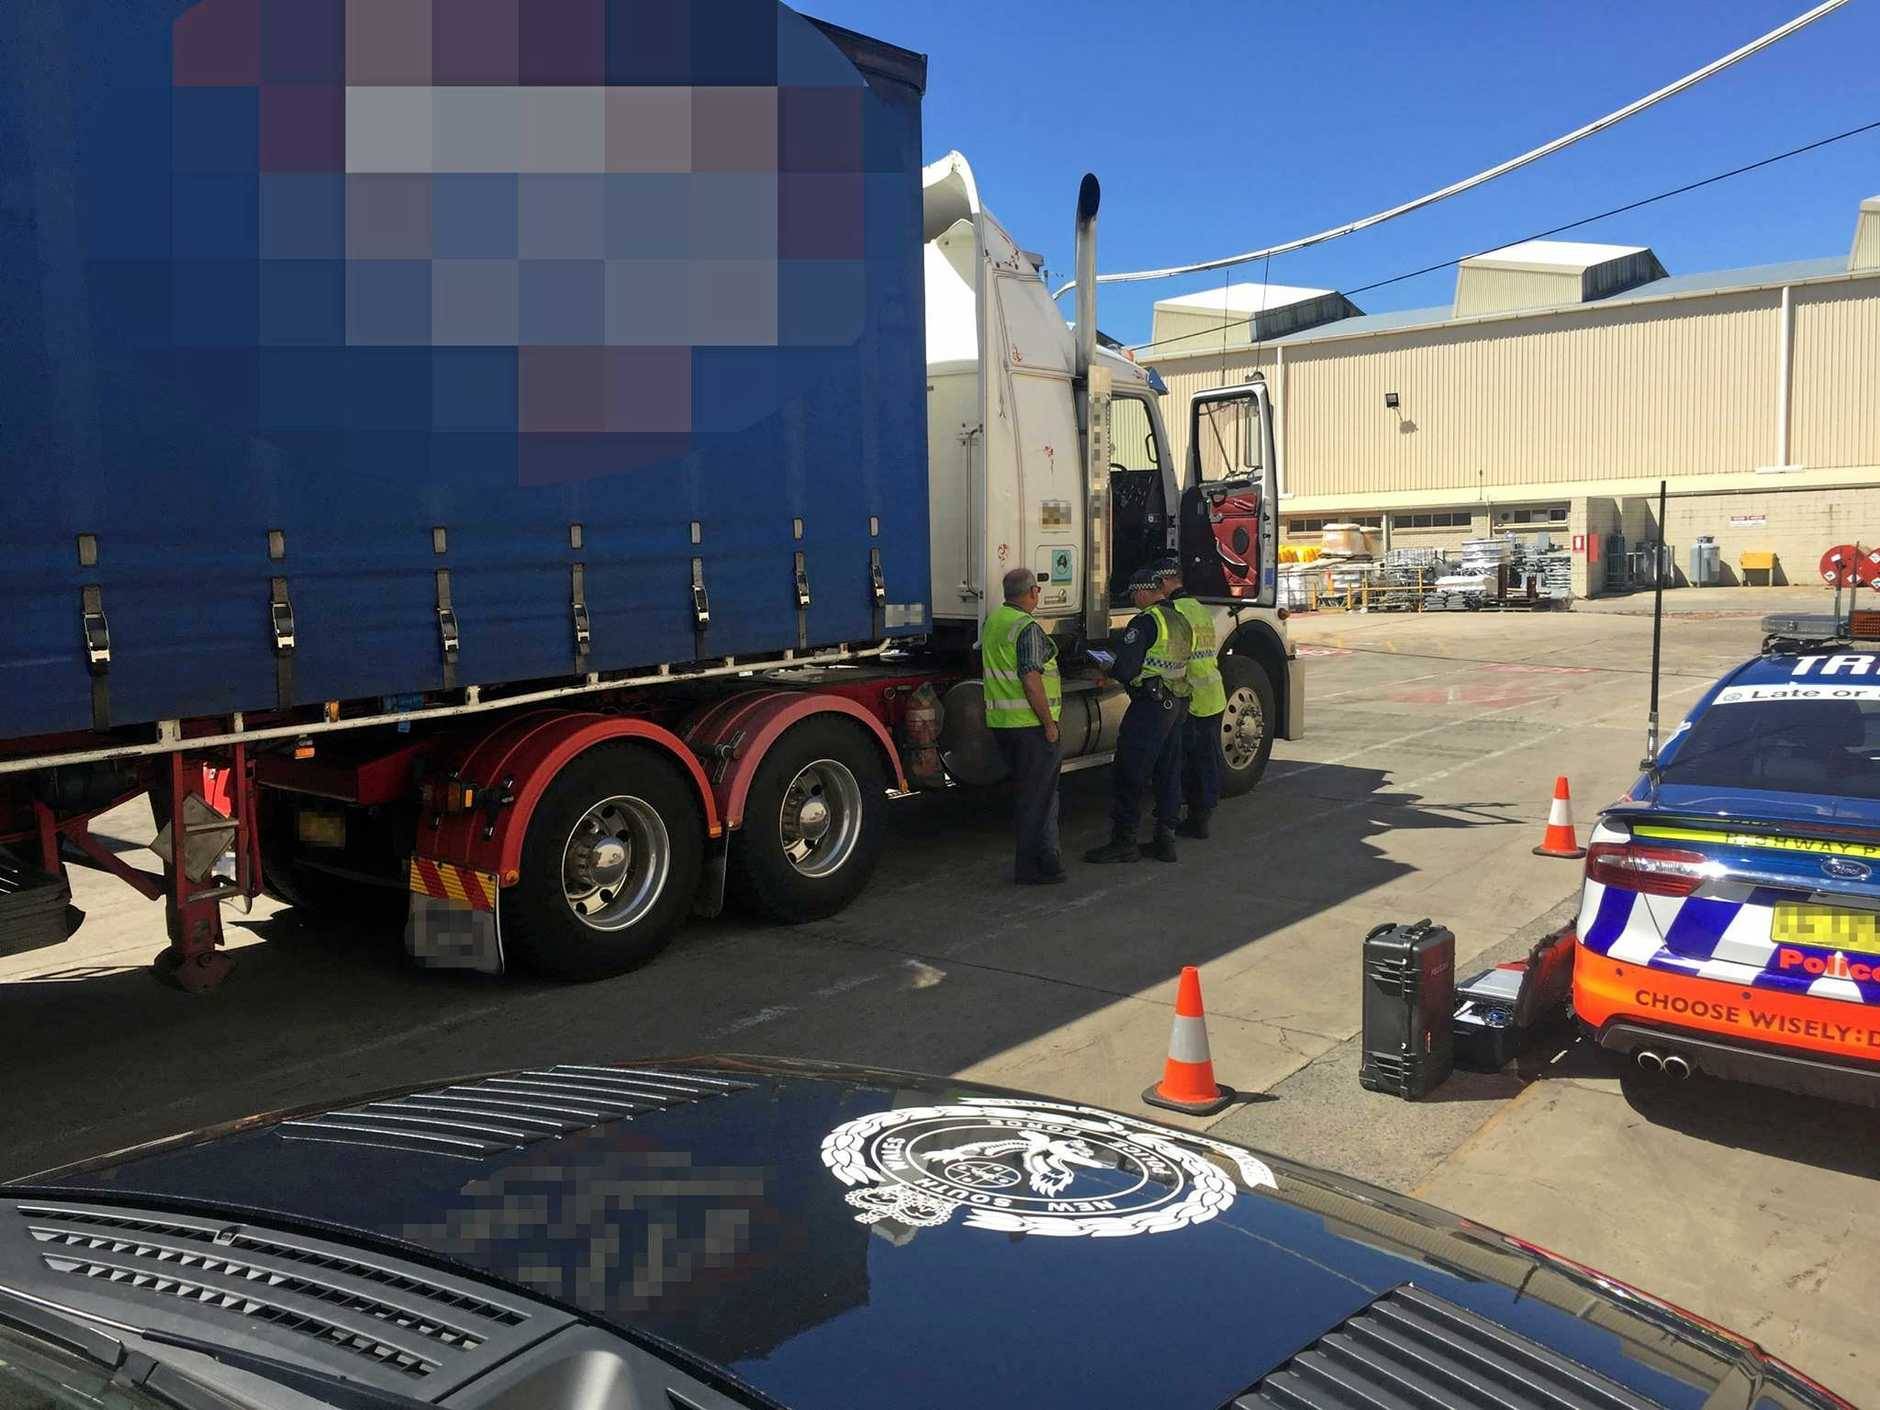 NSW police target a trucking company after their trucks were involved in a number of serious crashes.